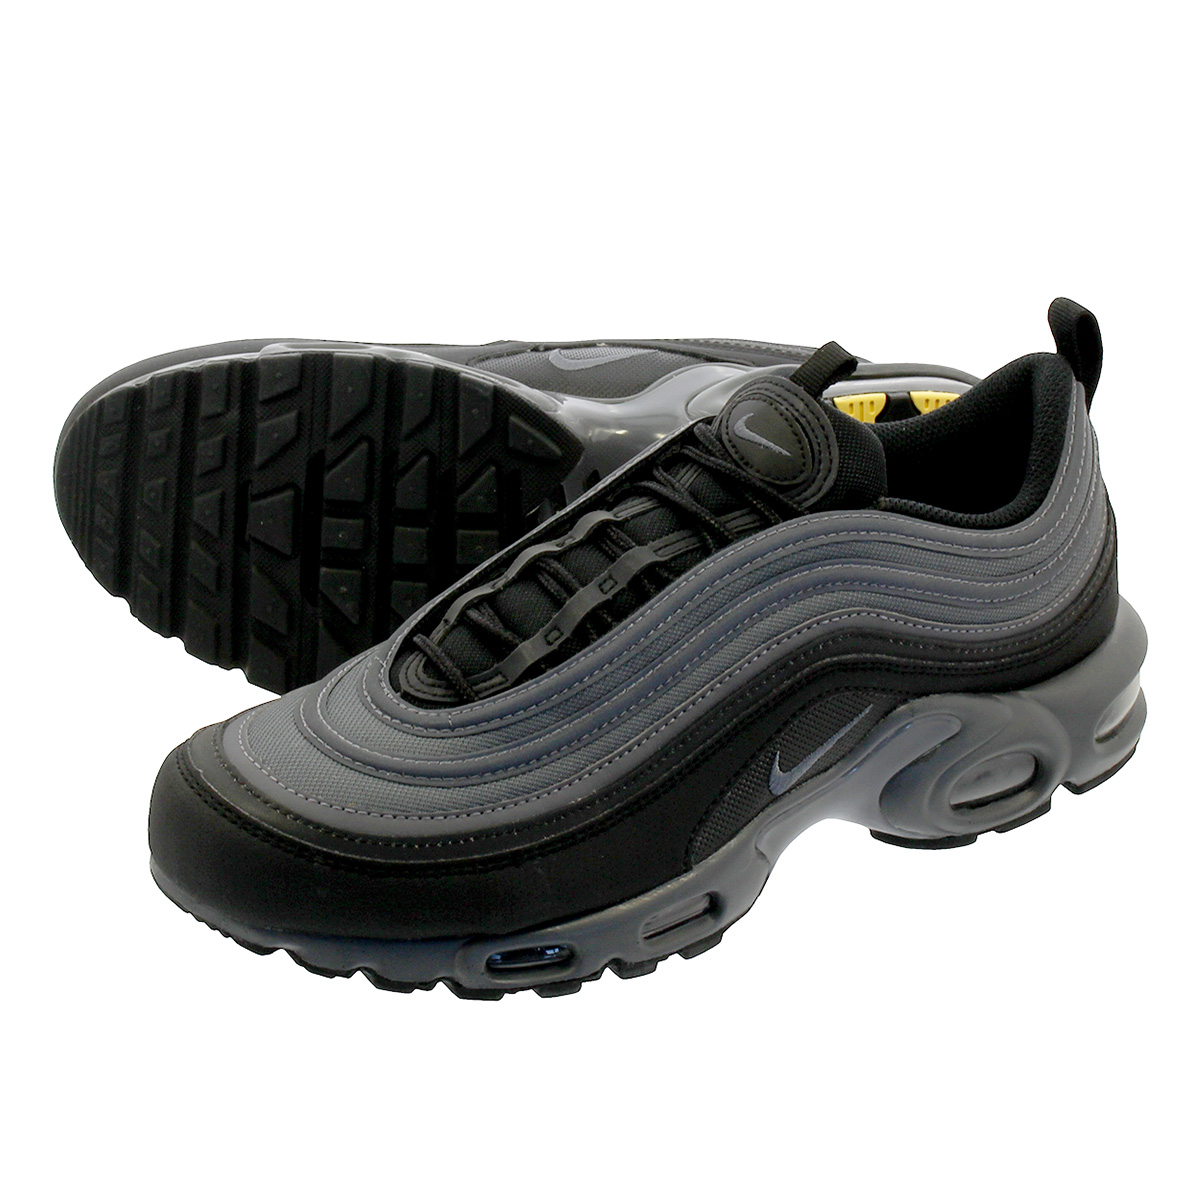 sports shoes 5f62c 6fce3 NIKE AIR MAX PLUS 97 Kie Ney AMAX +97 COOL GREY/PURE PLATINUM cd7859-001